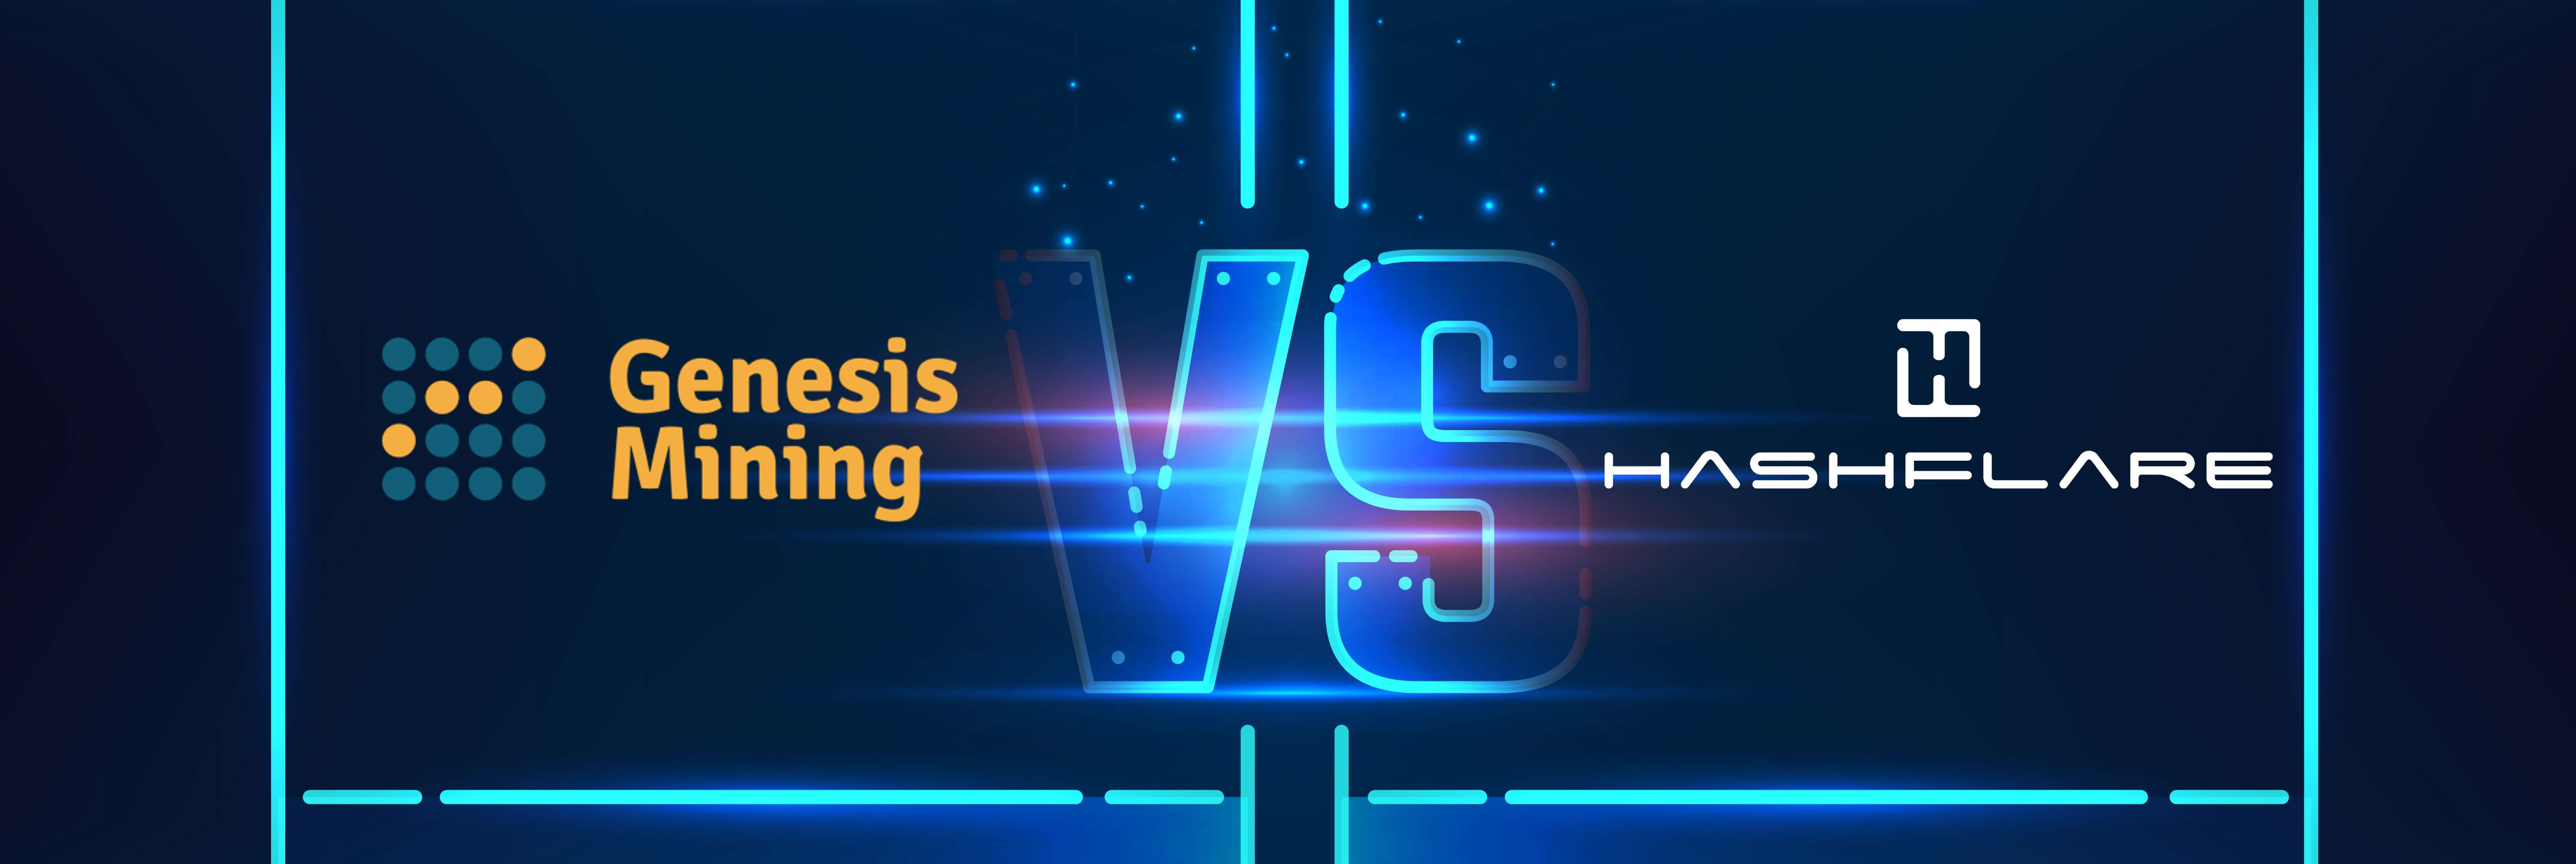 Compare Genesis Mining and Hashflare